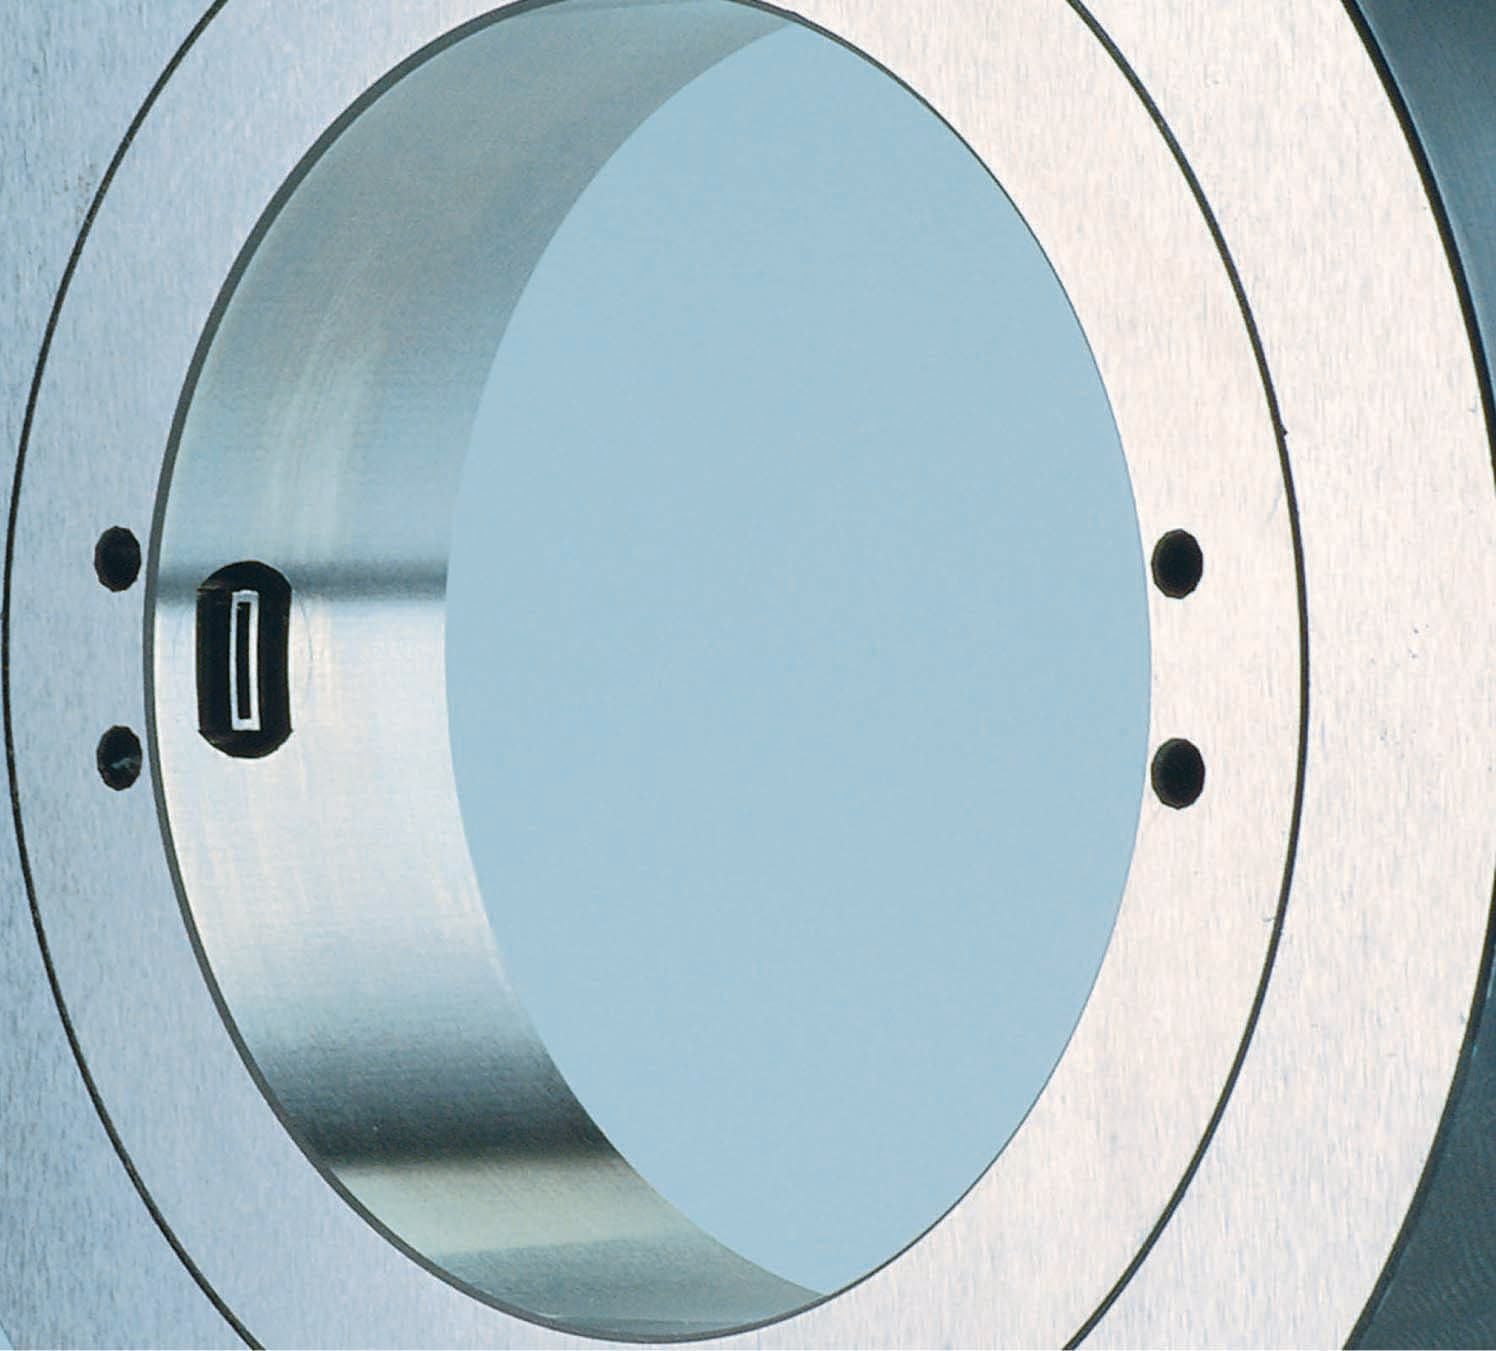 The pneumatic ring gauges from Jenoptik are extremely resilient and easy to maintain